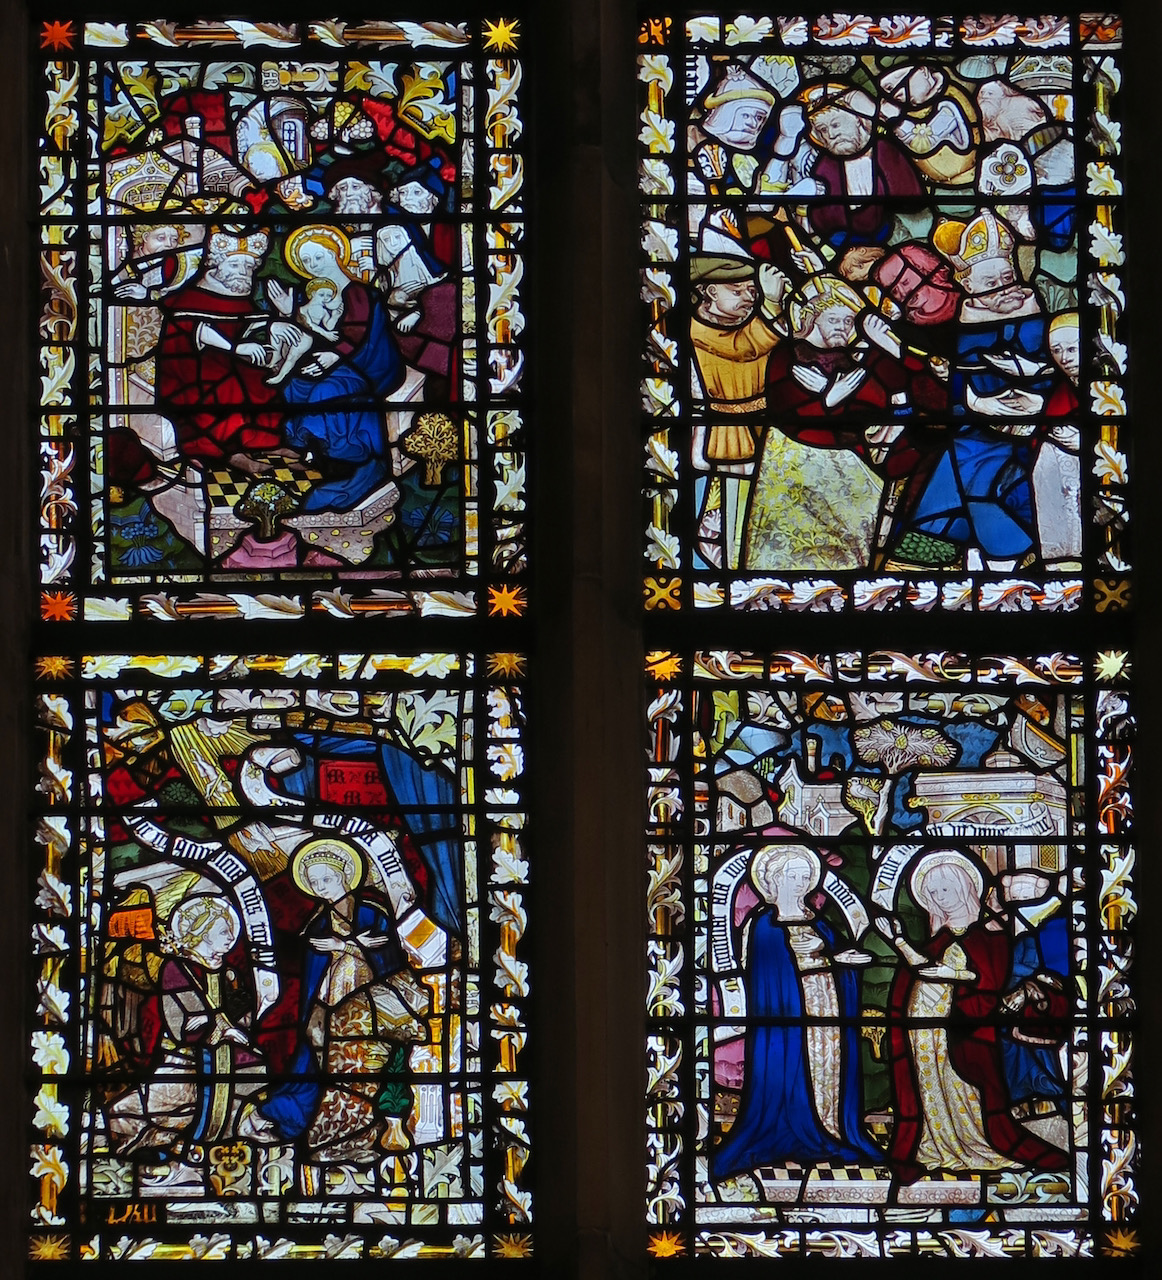 Chancel window (15th/16th c.), detail showing (from top left to bottom right) Jesus's circumcision, Jesus's flagellation, the annunciation, Mary visiting Elizabeth